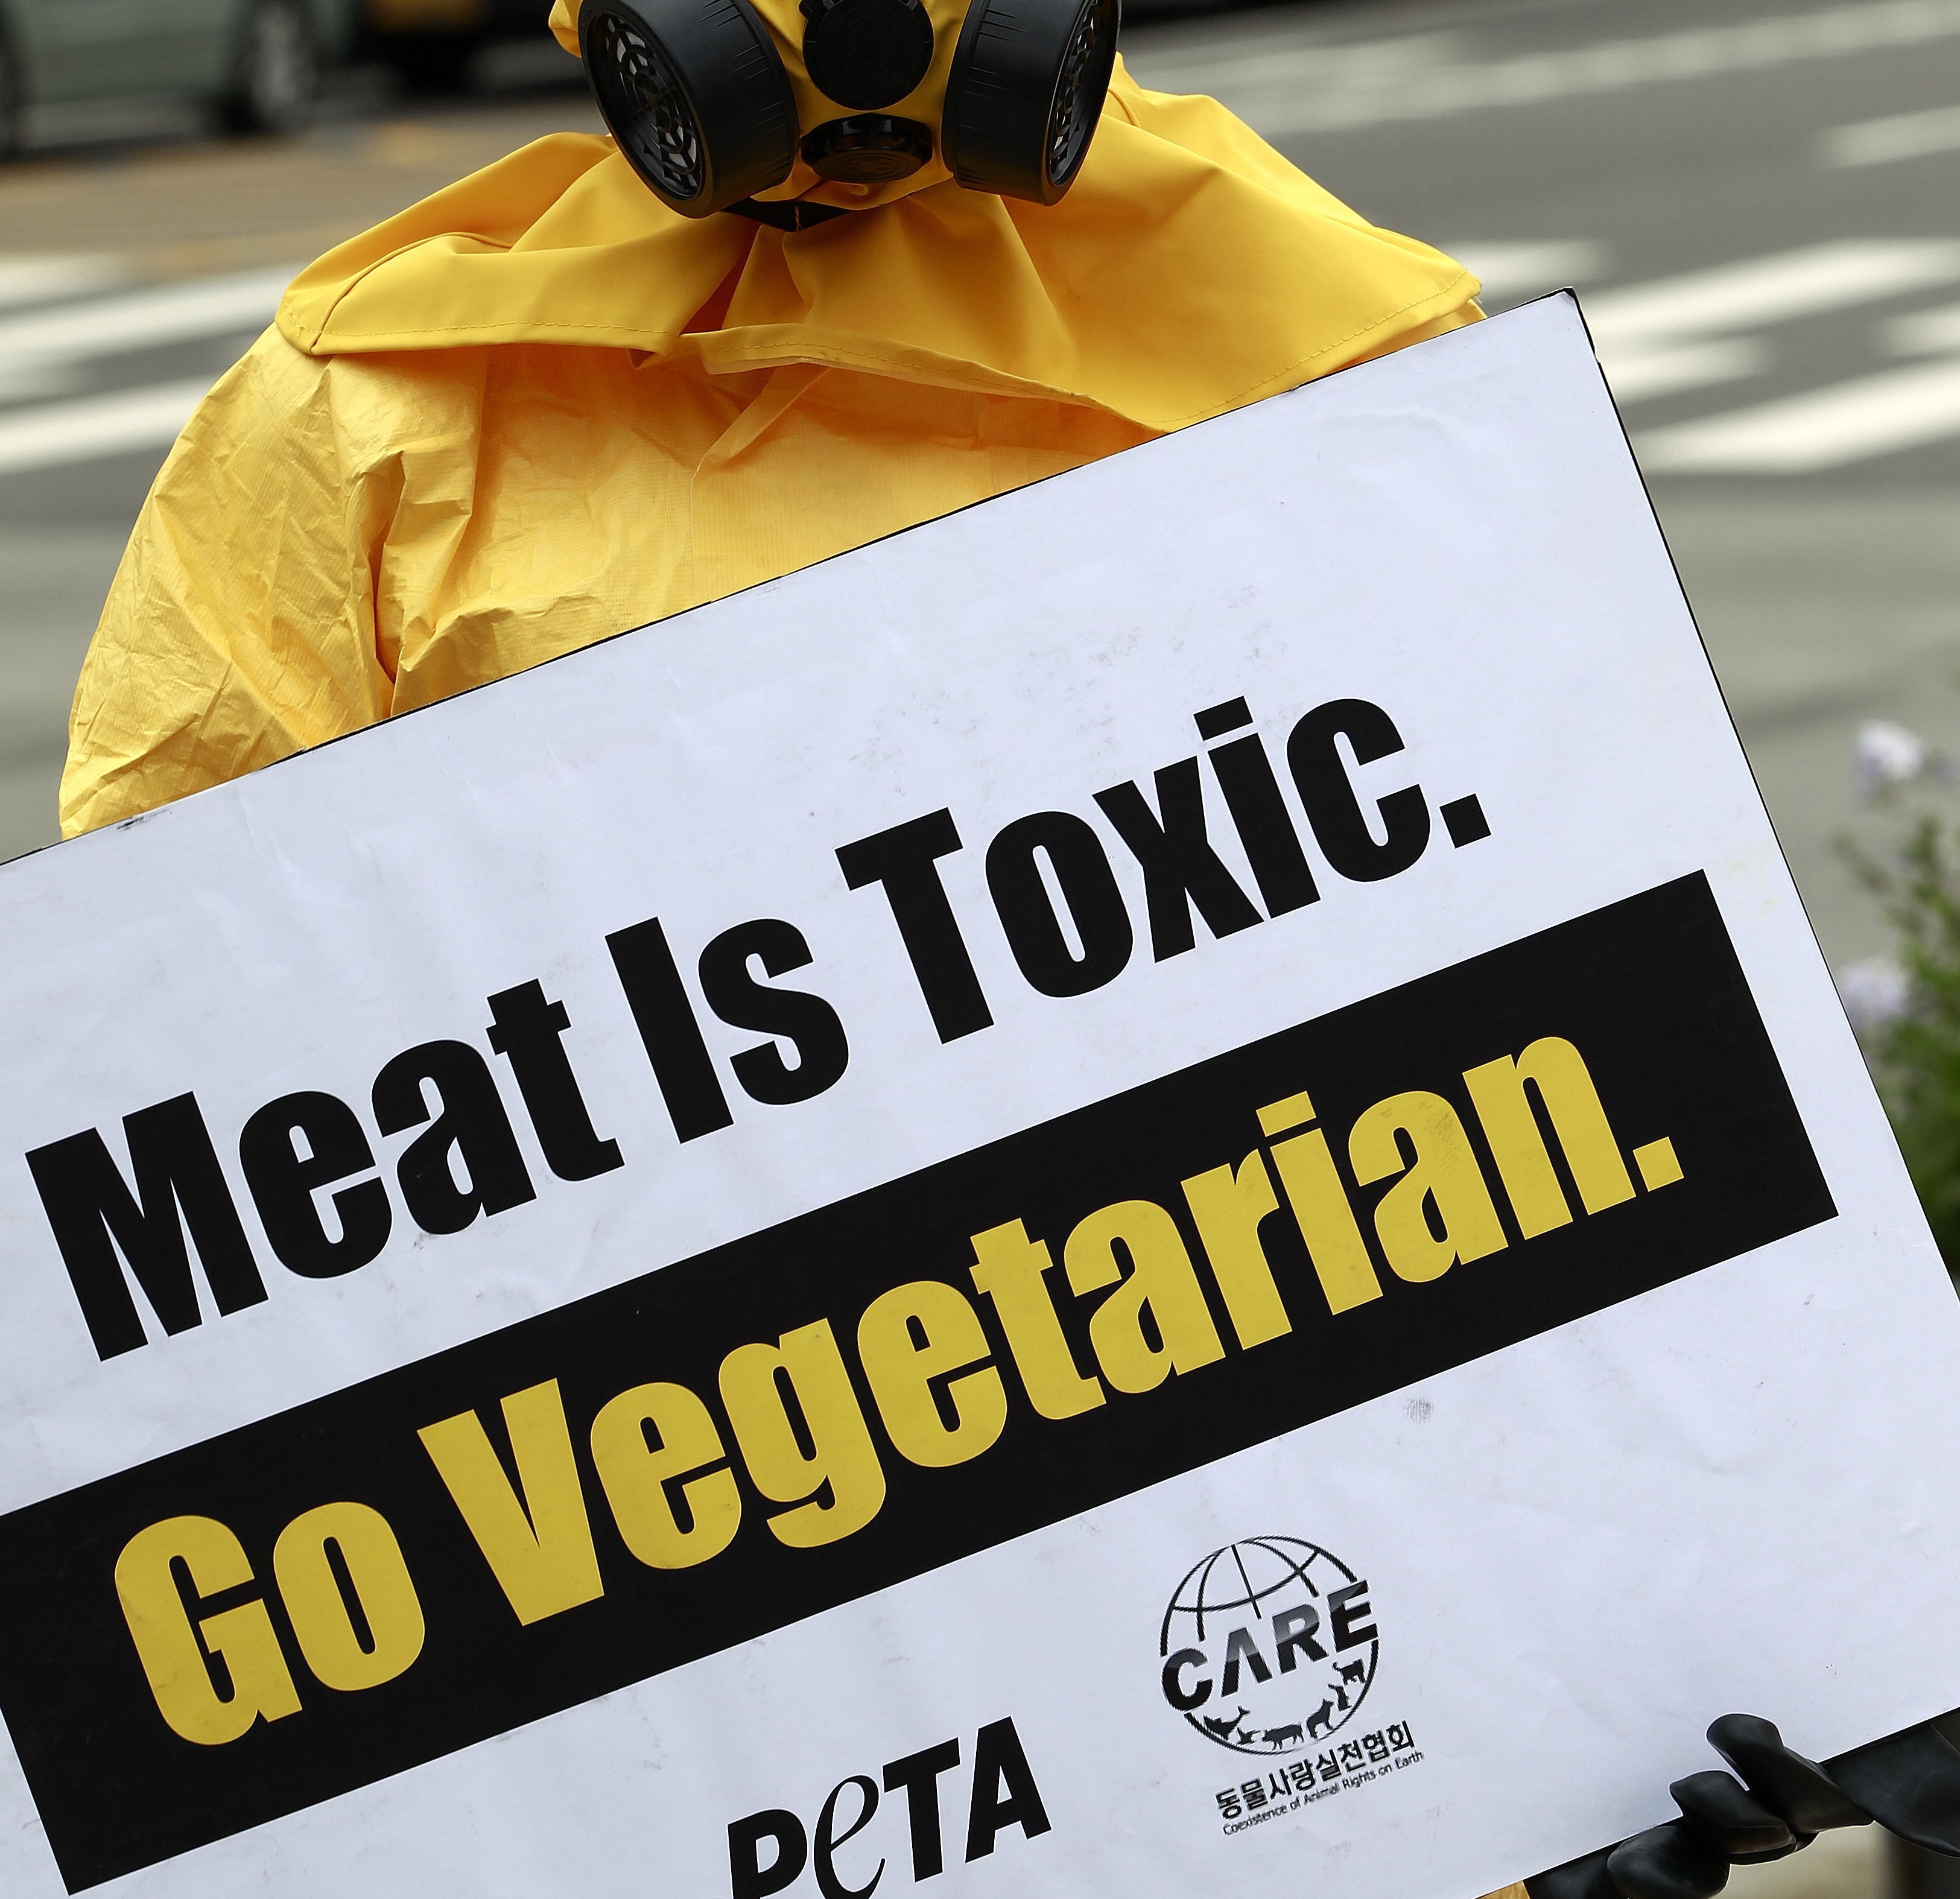 A Member of 'People For the Ethical Treatment of Animals' (peta) Protests Wearing a Yellow Hazardous Material Suit with a Gas Mask and Holds a Signs That Reads 'Meat is Toxic Go Vegetarian' on the Street in Seoul South Korea 24 August 2012 Korea, Republic of SeoulSouth Korea Peta Protest - Aug 2012